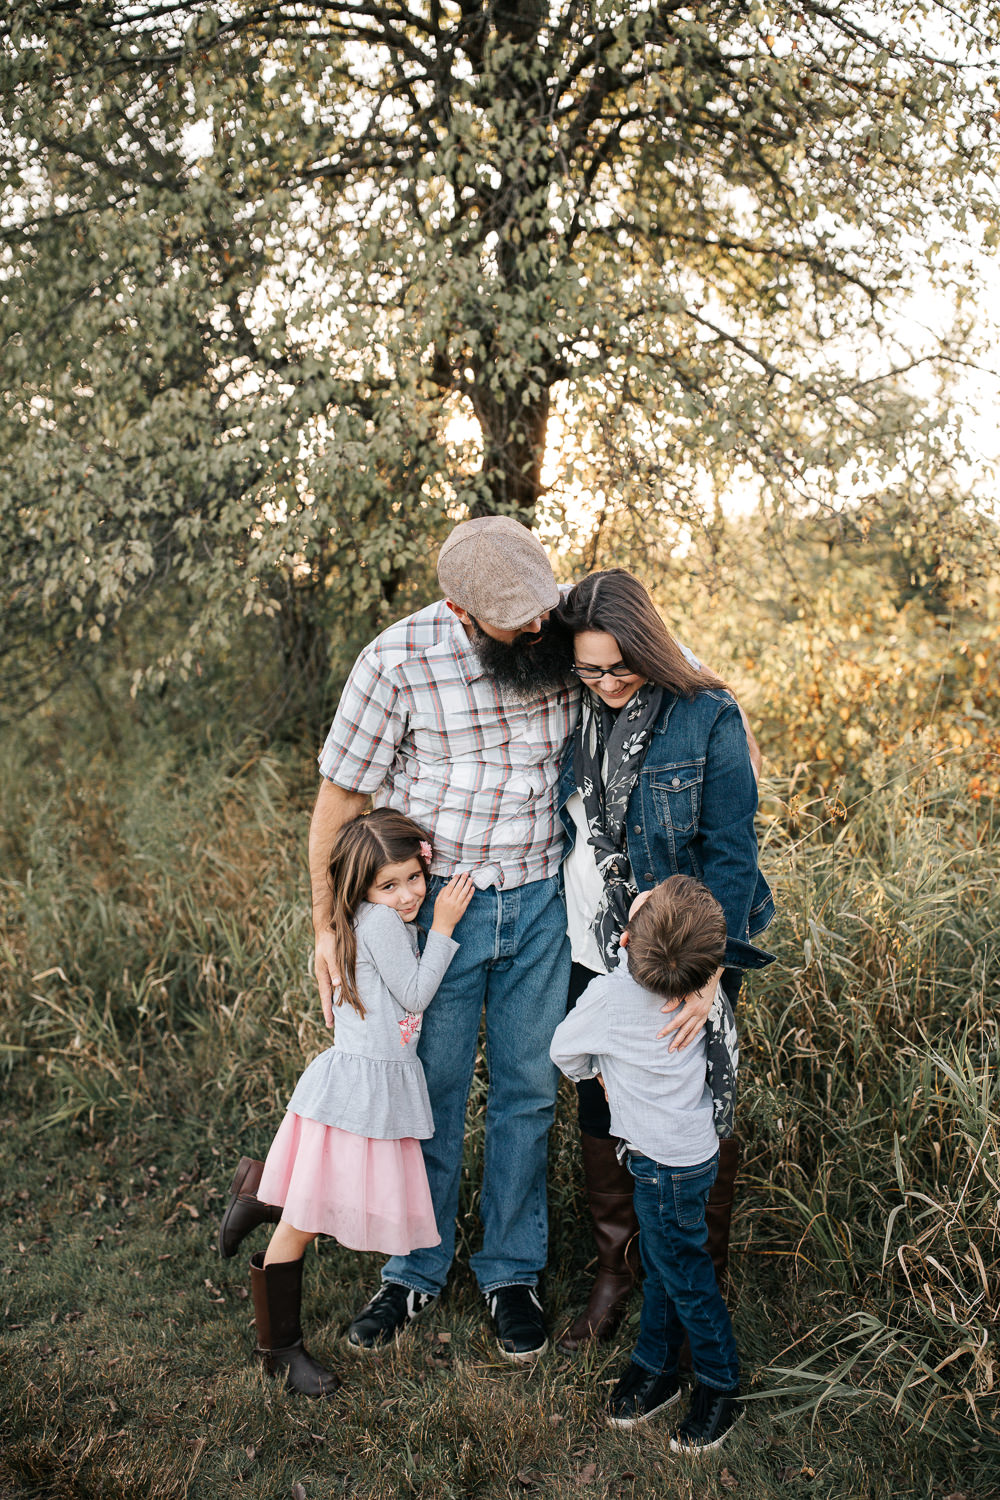 family of 4 standing together in grass field in front of tree, 5 year old girl hugging dad's leg, 4 year old boy looking up at mom, both parents looking at son - Barrie Lifestyle Photography